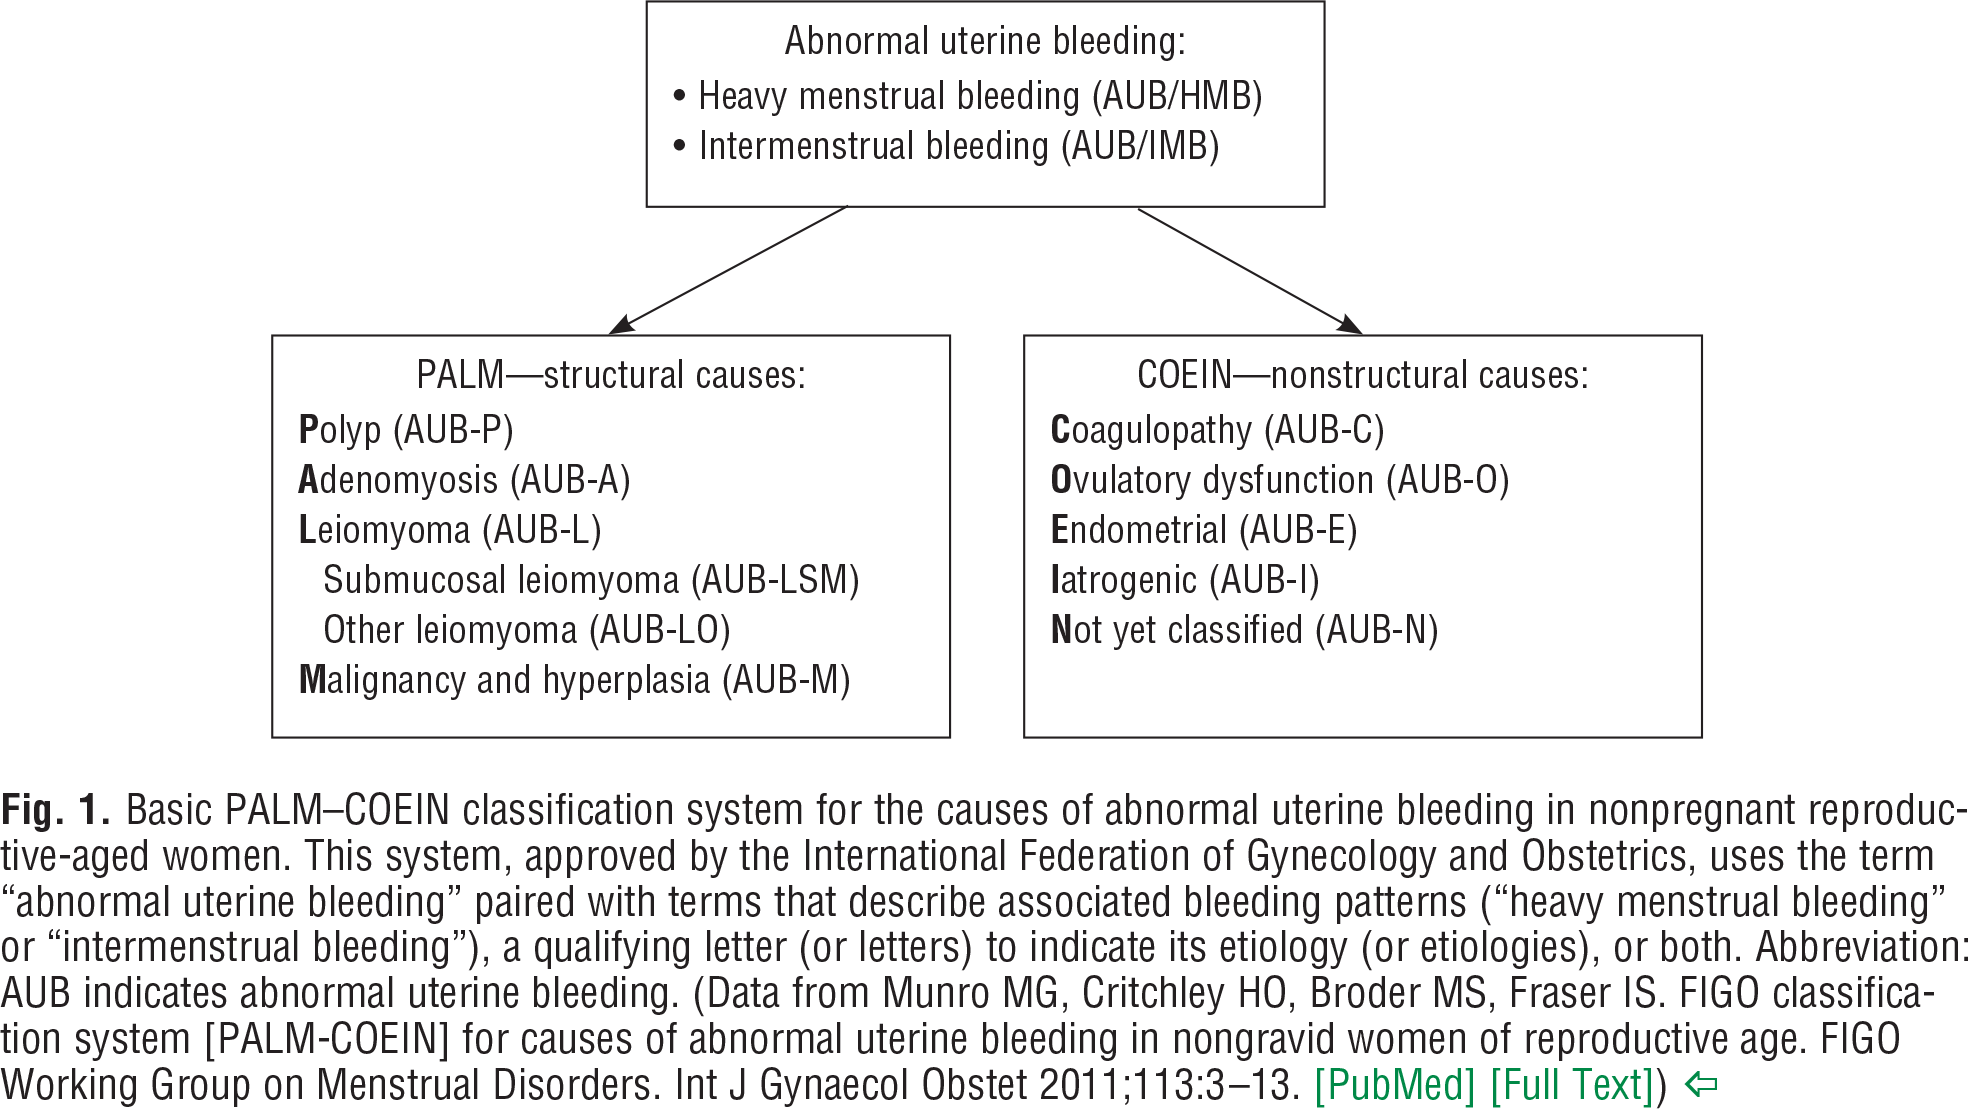 Management of Acute Abnormal Uterine Bleeding in Nonpregnant Reproductive-Aged Women